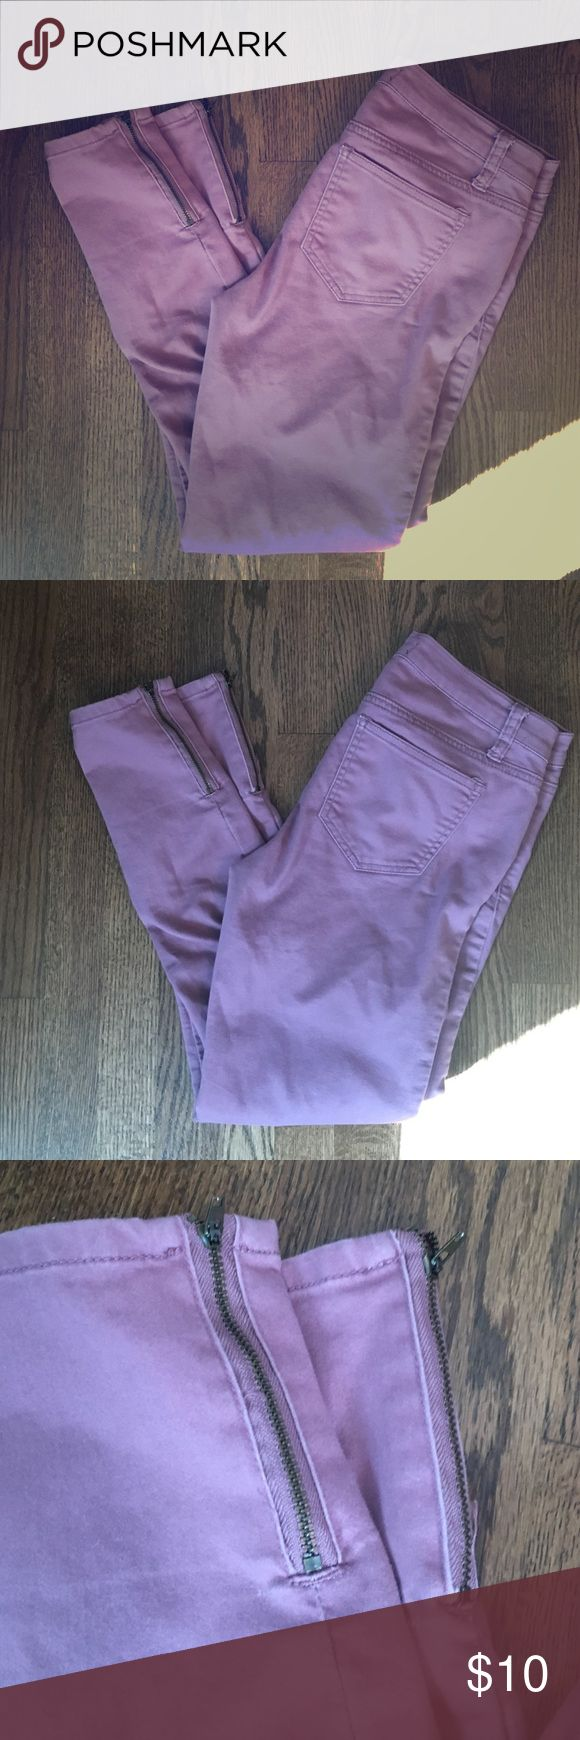 Forever 21- Lavender skinny with zipper pants Lavender skinny. Zippers at the end of each pant leg. Great condition! Forever 21 Jeans Skinny